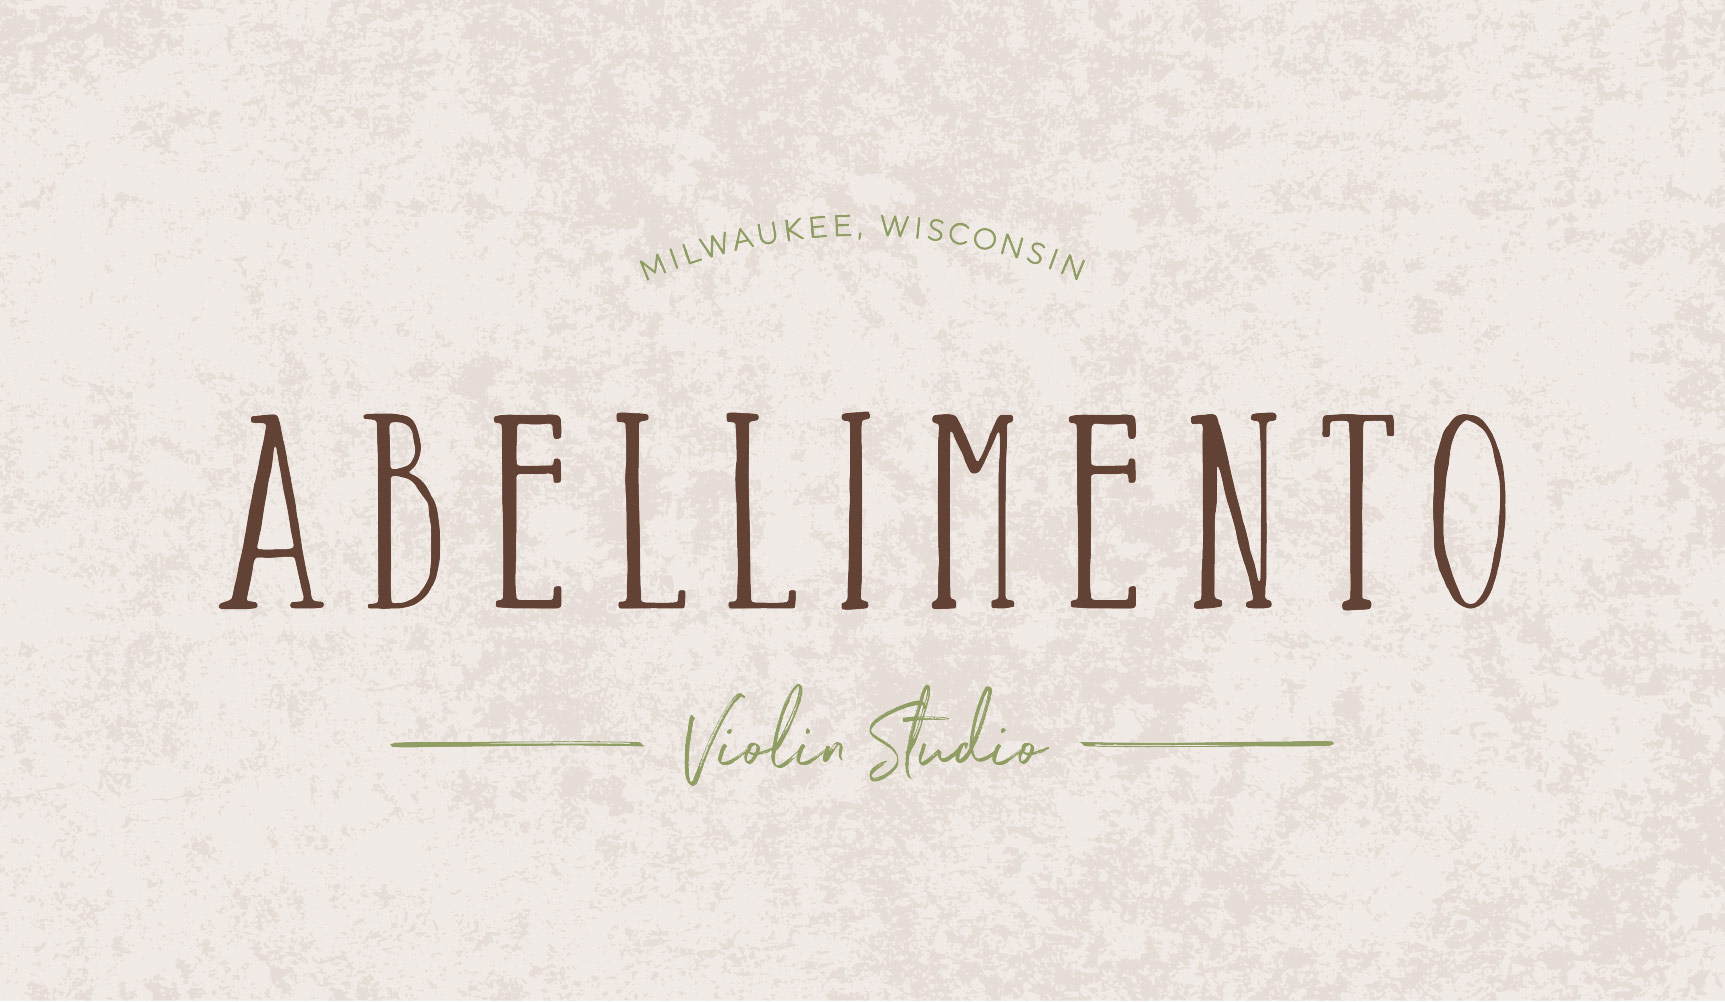 Abellimento Violin Studio Logo and Visual Branding by AllieMarie Design